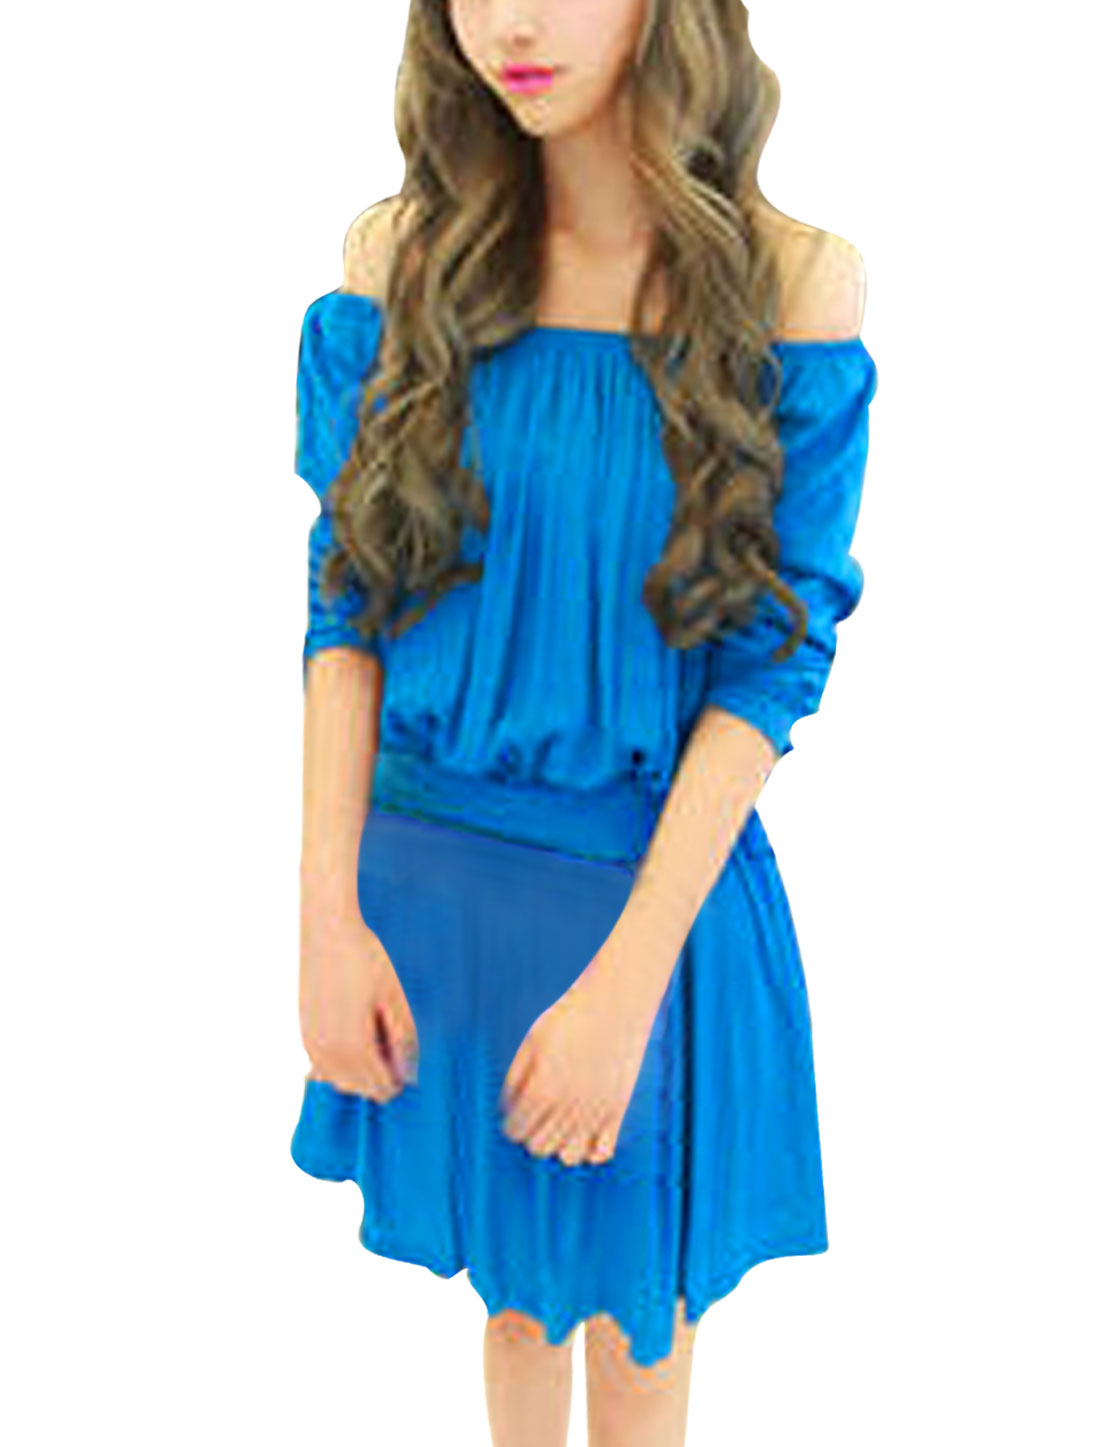 Ladies Off-Shoulder Design Lace Up Elbow Sleeve Royalblue Mini Dress S